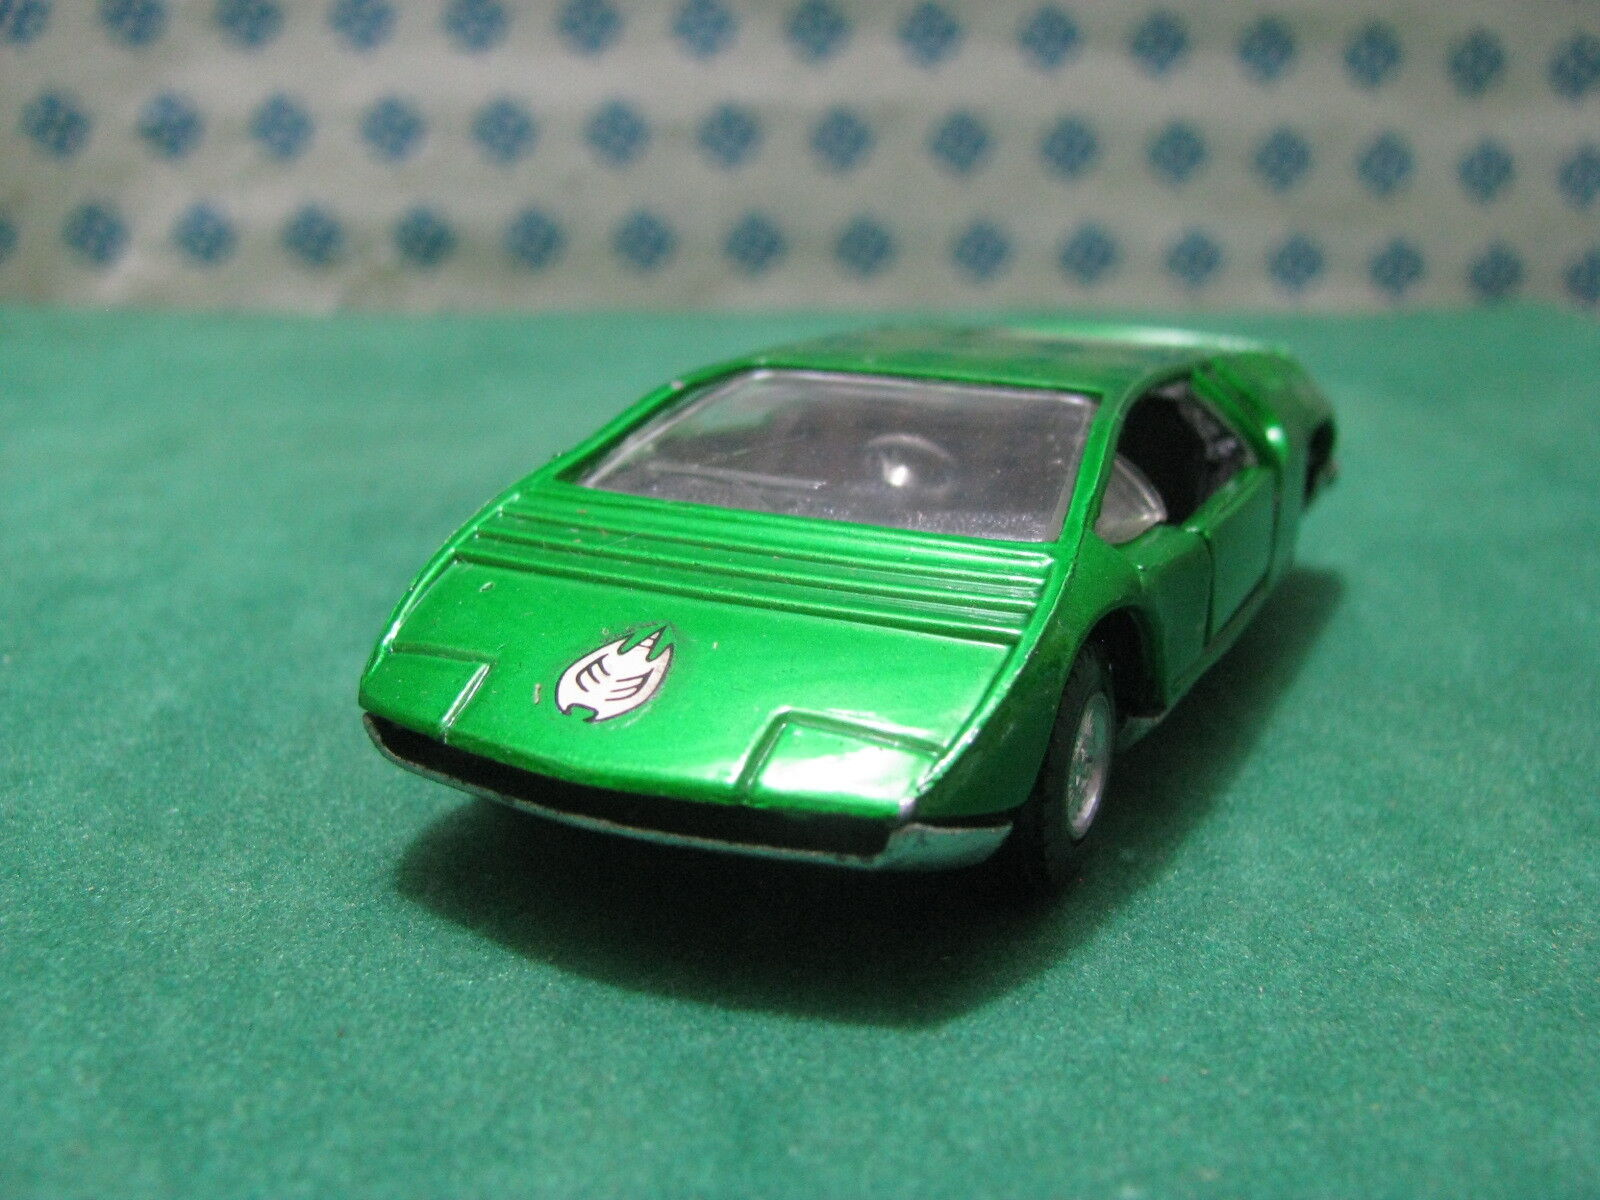 Vintage - MANTA carrosserie Bizzarrini - 1 43 43 43 Mercury Art. 308 322816